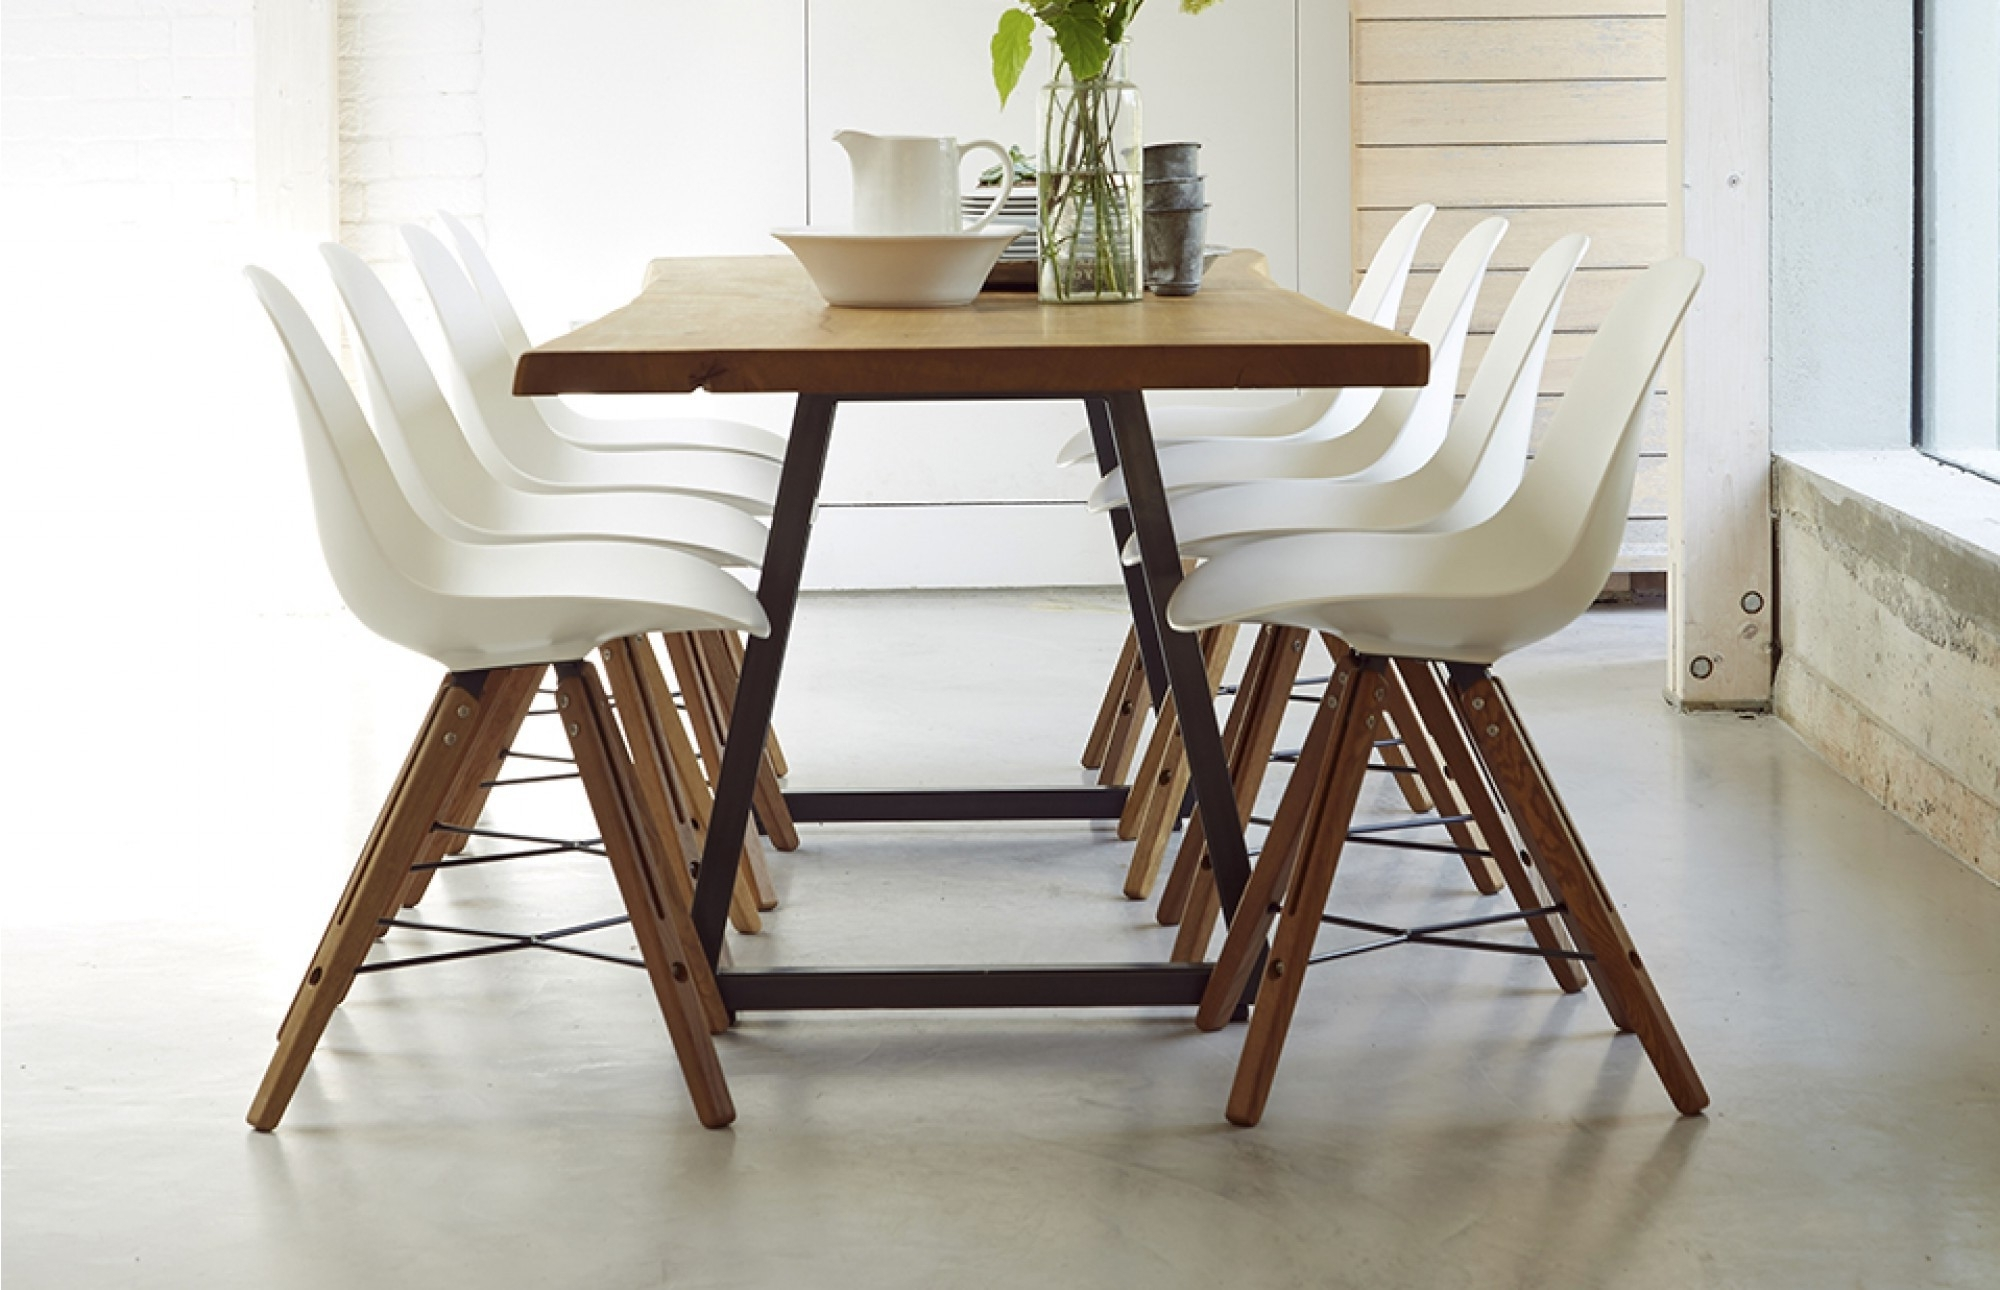 Dining Tables 8 Chairs Inside Popular Dining Table Sets 8 Chairs Elegant Luxury Contemporary Tables And (View 15 of 25)